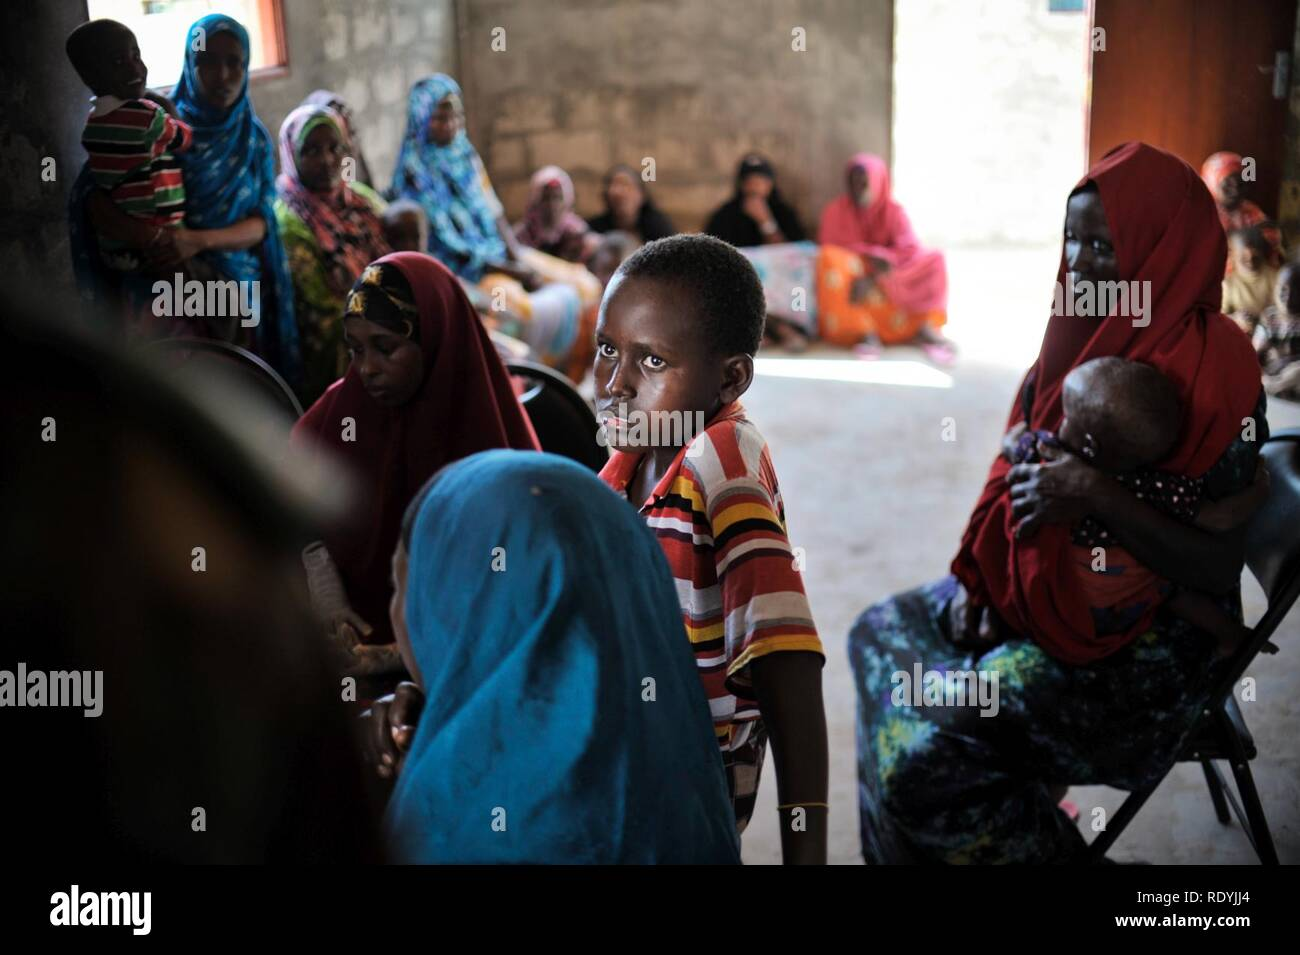 At a clinic held at Jazeera Training Camp on April 6, patients come to a free medical clinic in order to receive treatment for a variety of maladies. Many of the clinic's patients come from Jazeera (8634143746). - Stock Image